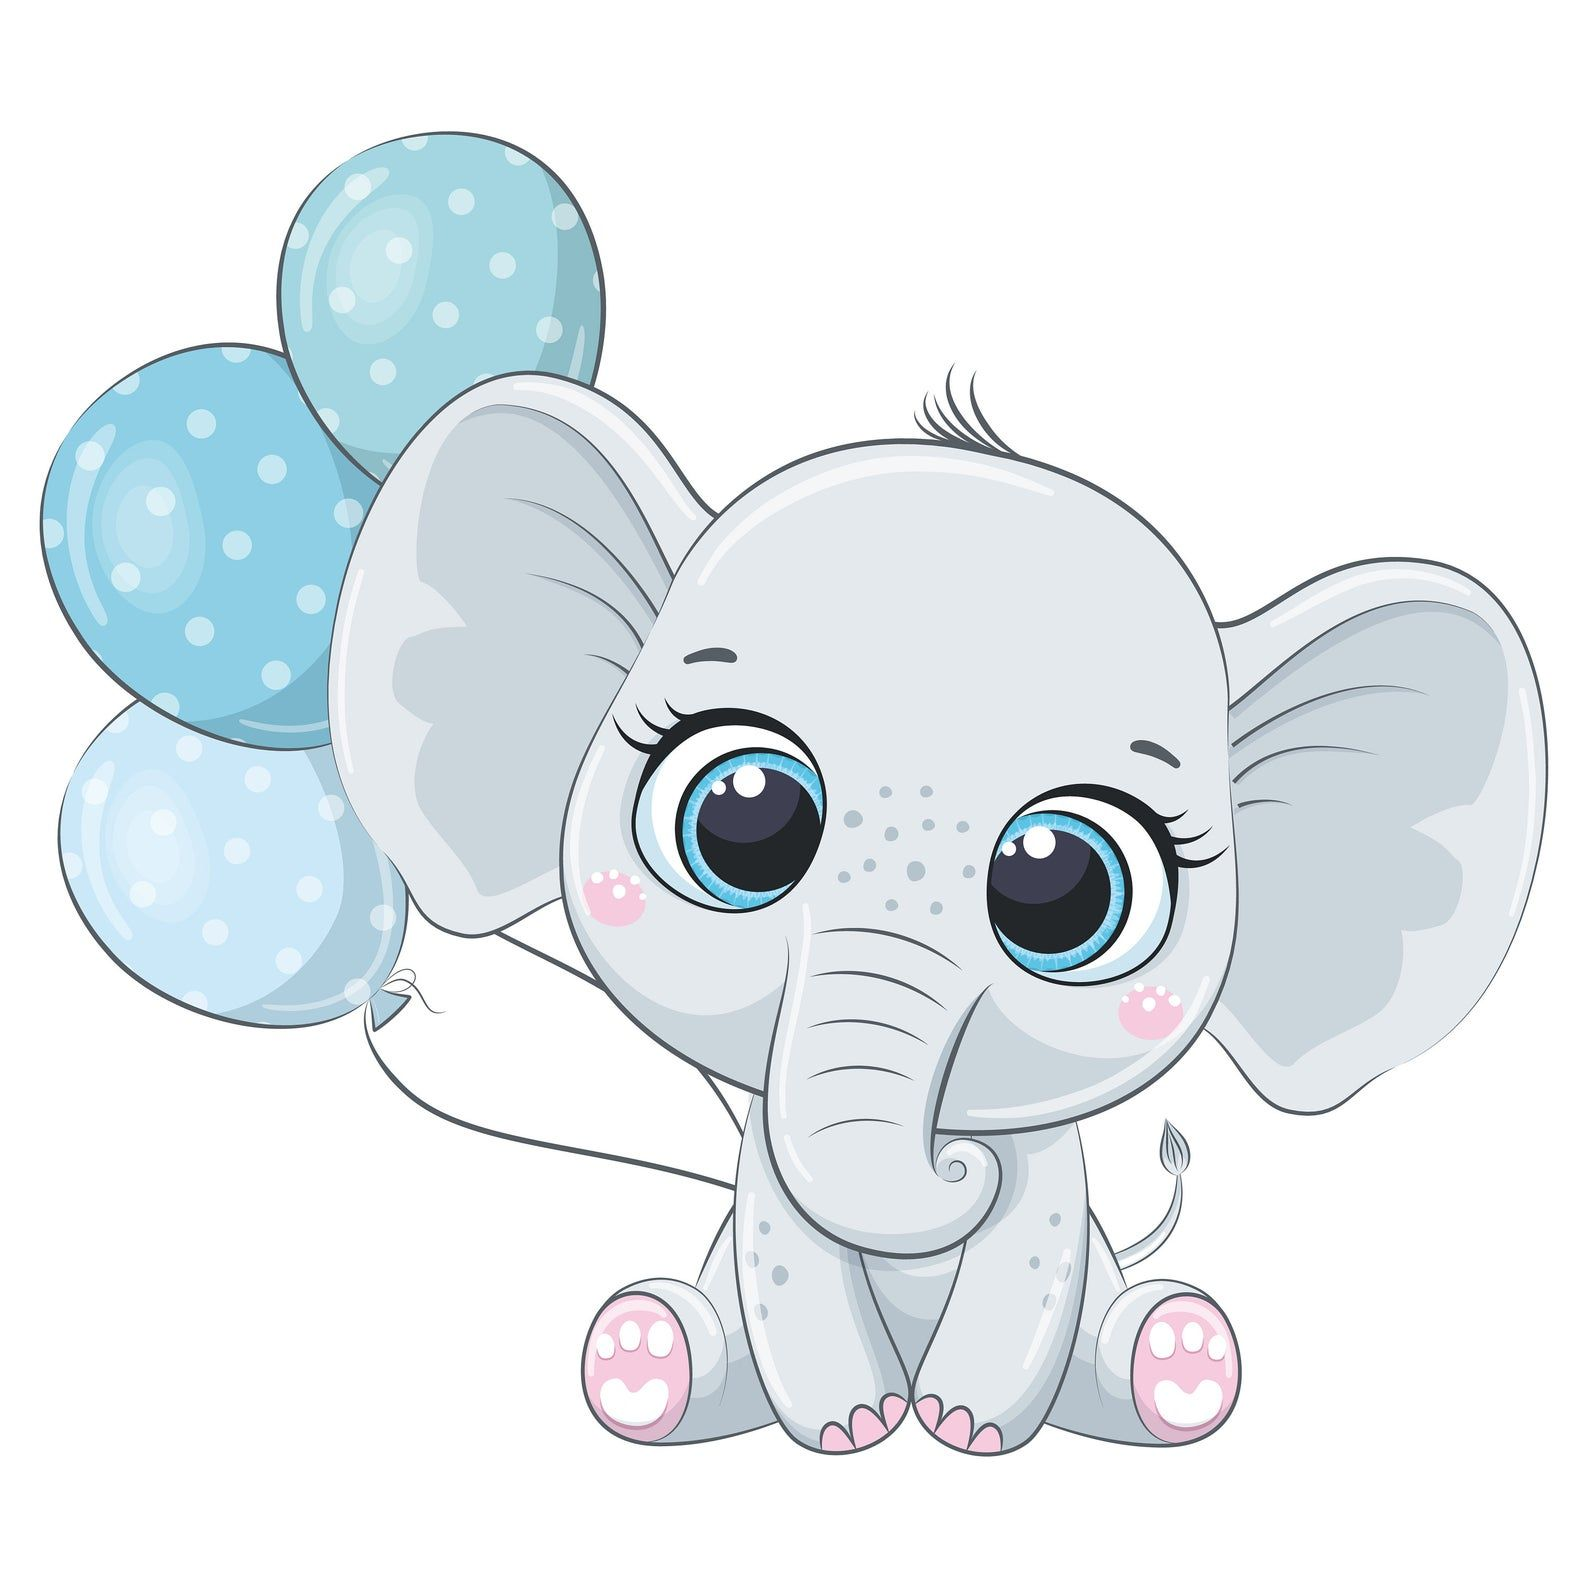 Elephant Baby Shower Clipart Png Jpeg Eps Elephant Baby Boy It S A Boy Nursery Clipart Baby Elephant Drawing Baby Shower Clipart Baby Animal Drawings